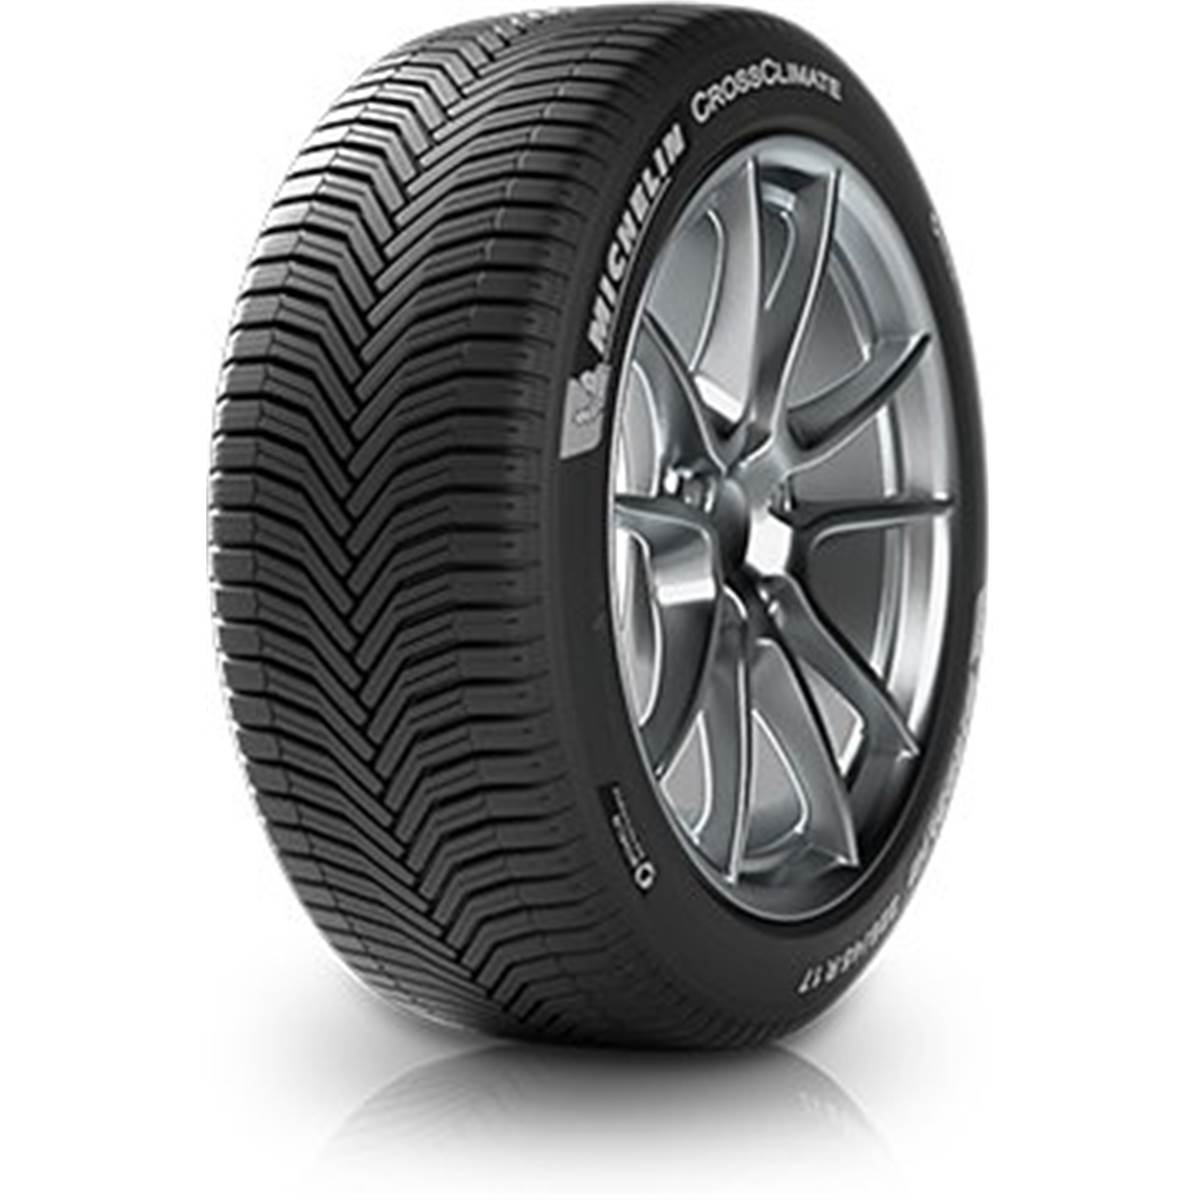 Michelin Crossclimate Xl pneu